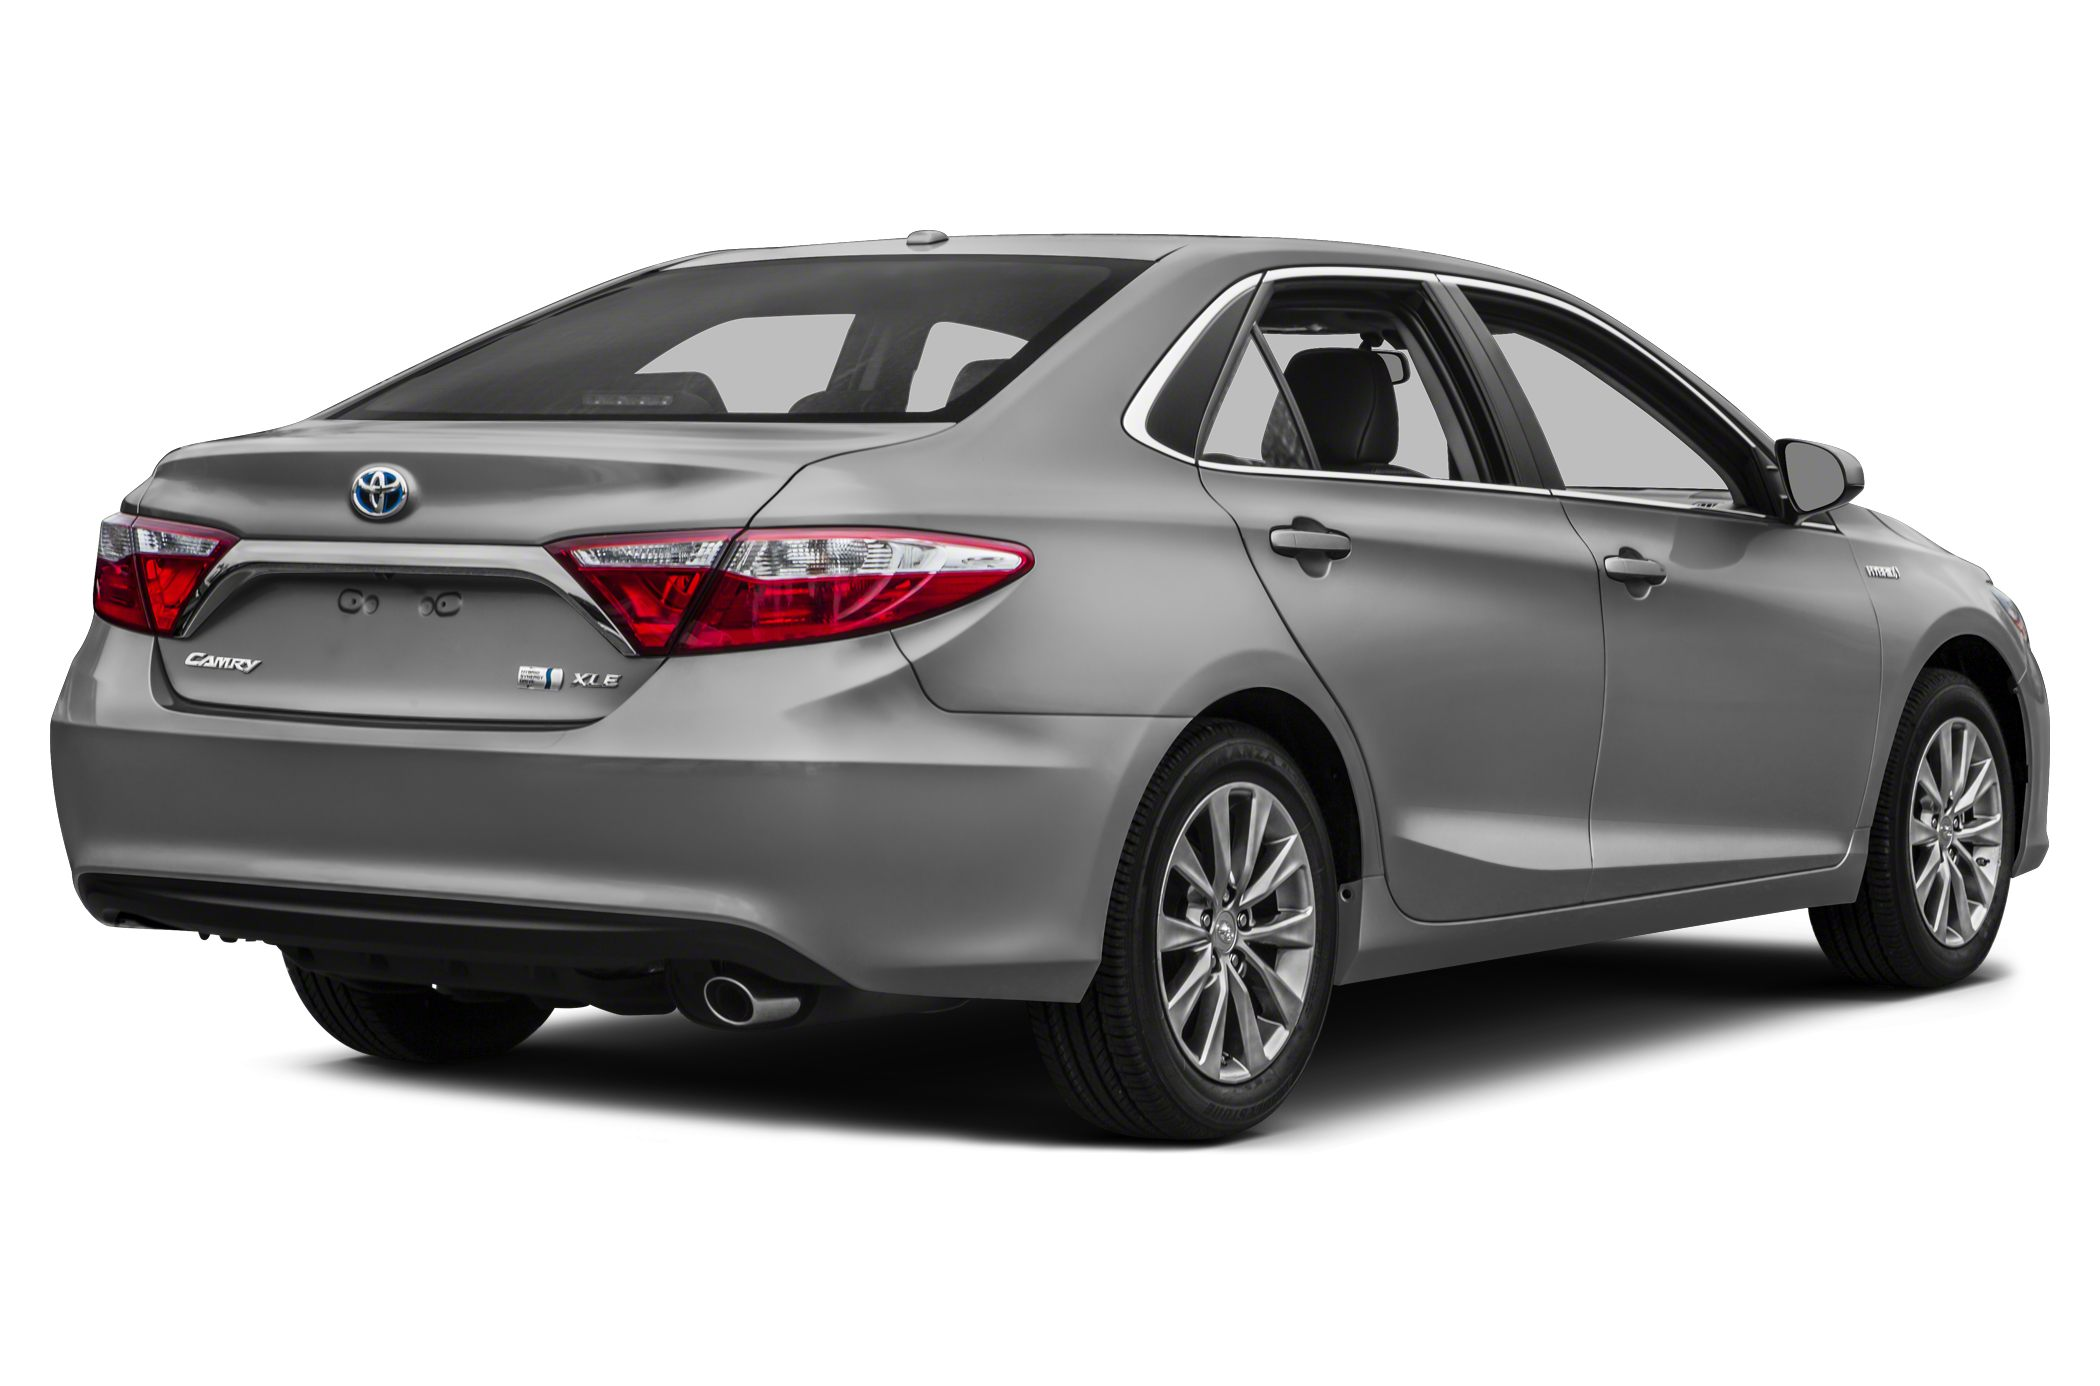 camry little roadshow the is lot news more hero price toyota a expensive efficient